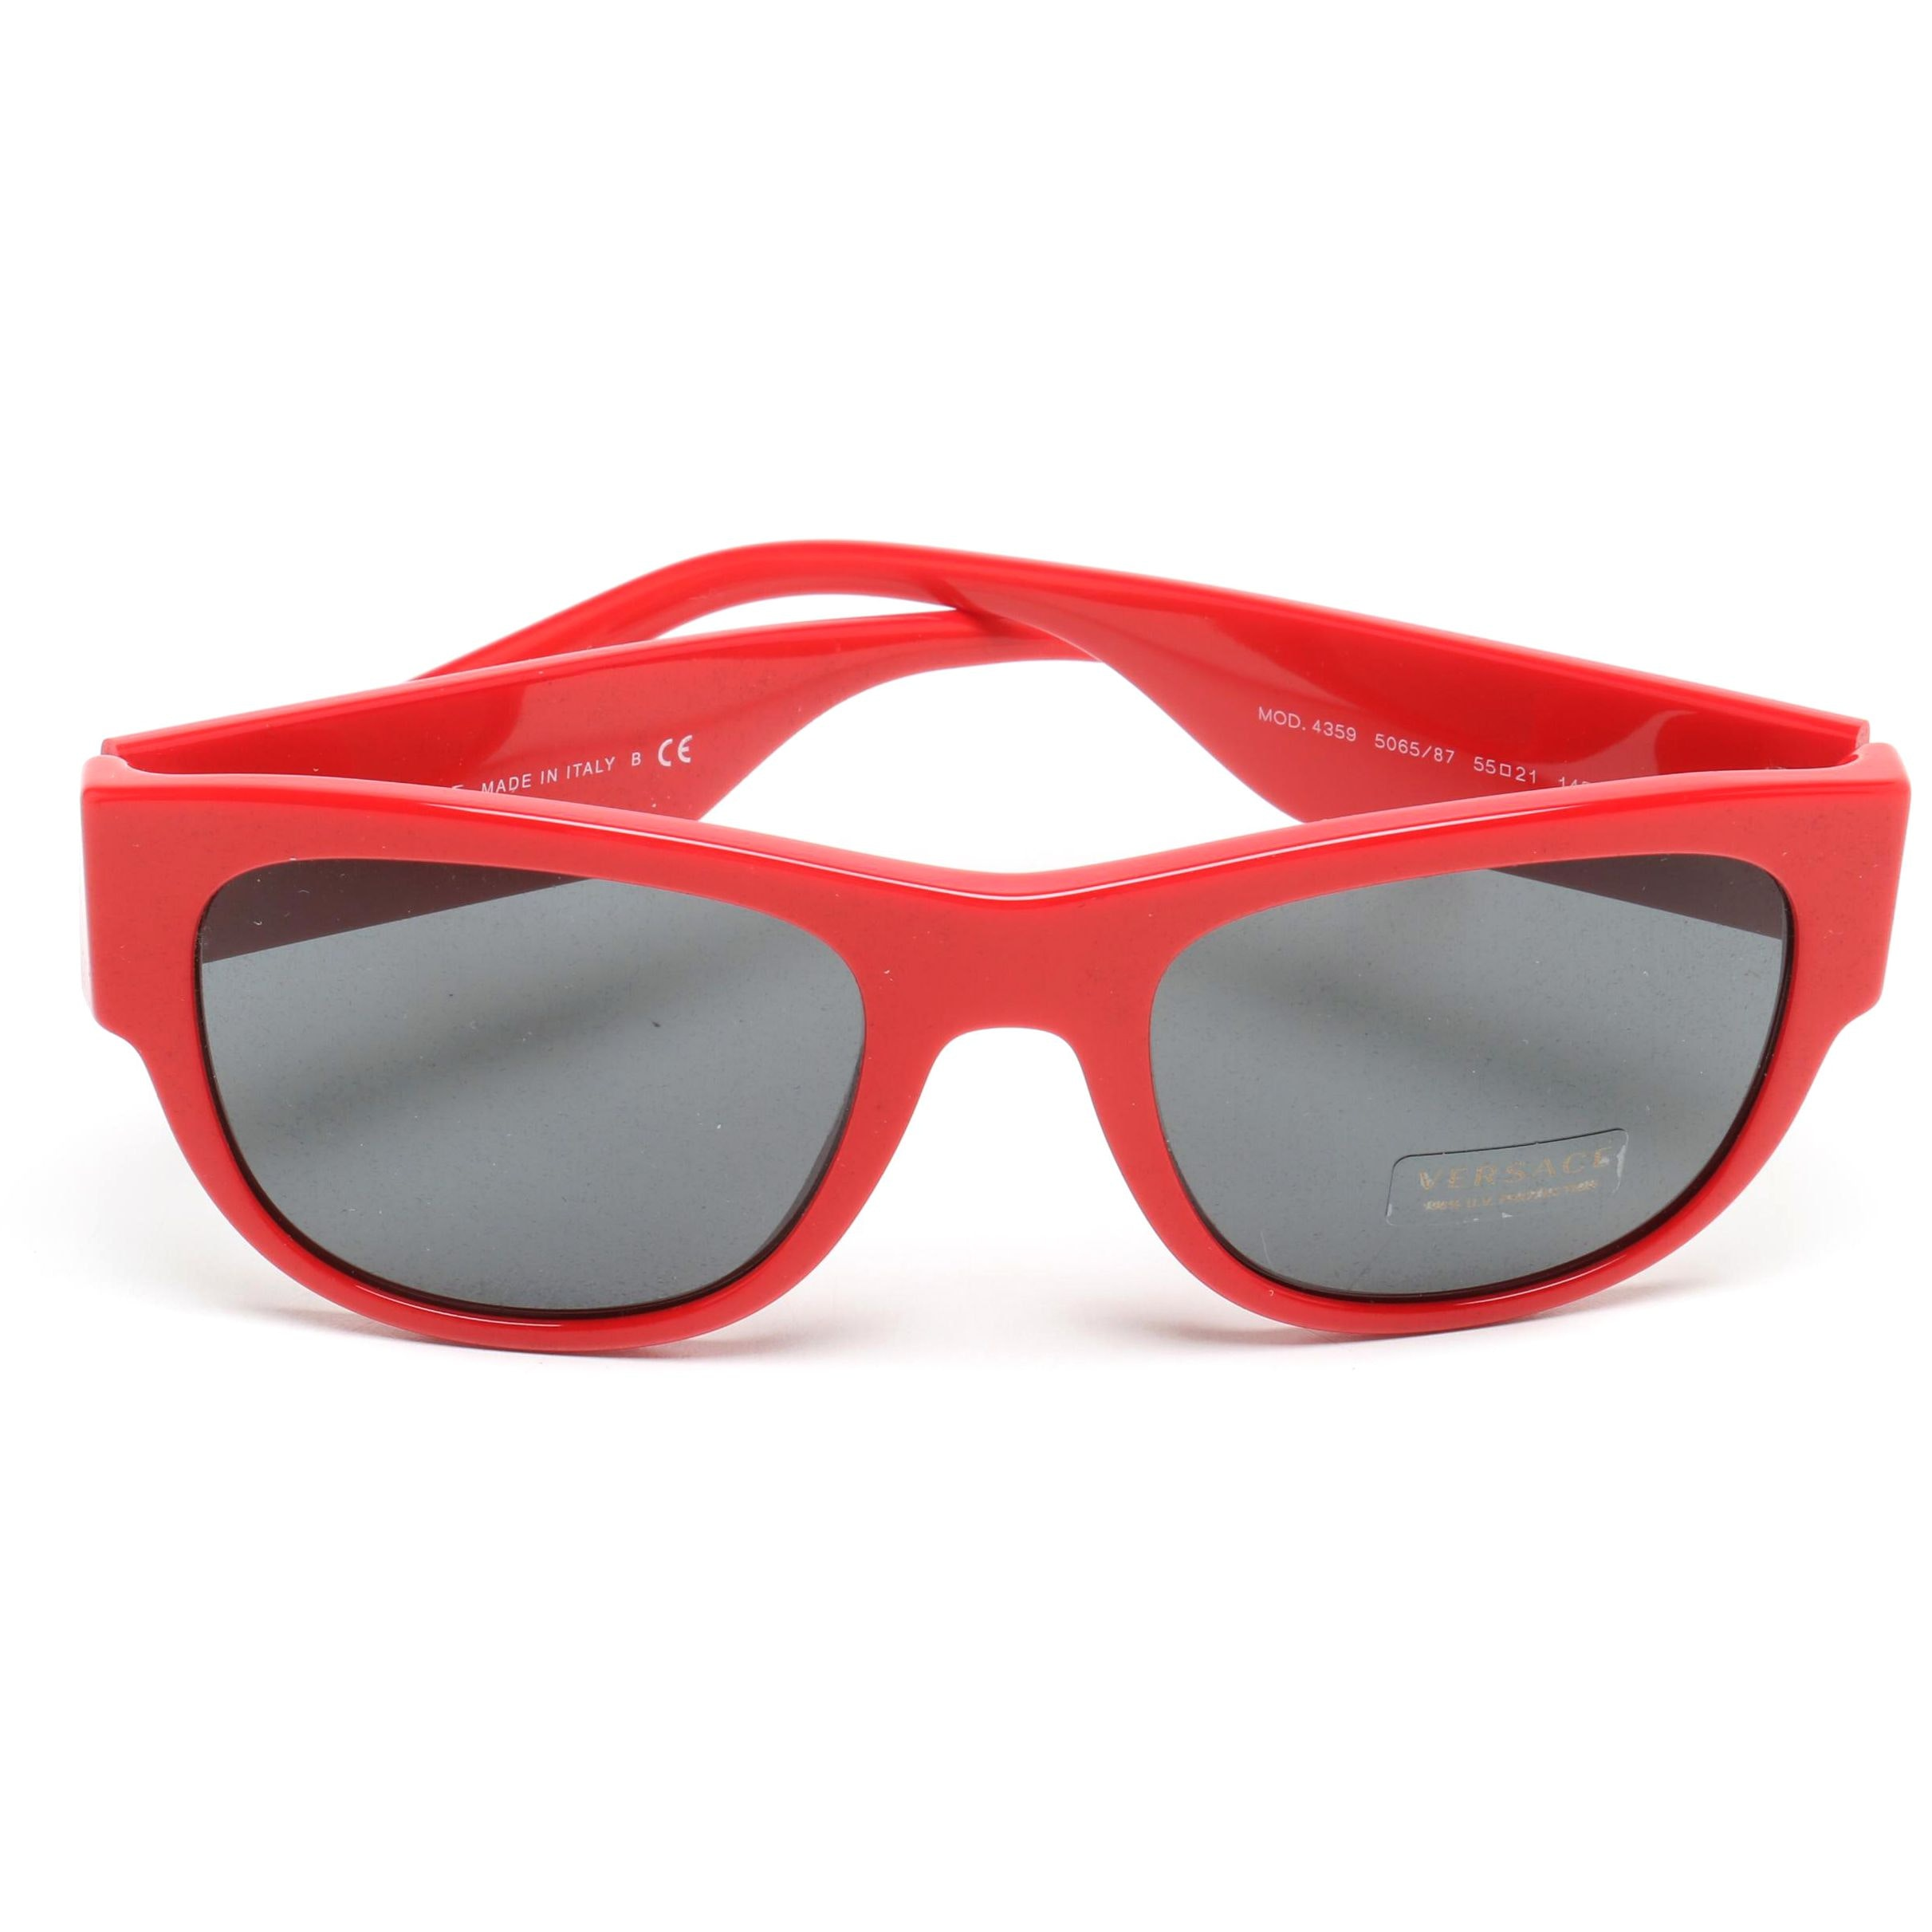 Versace Red Medusa Accent Sunglasses with Case and Box